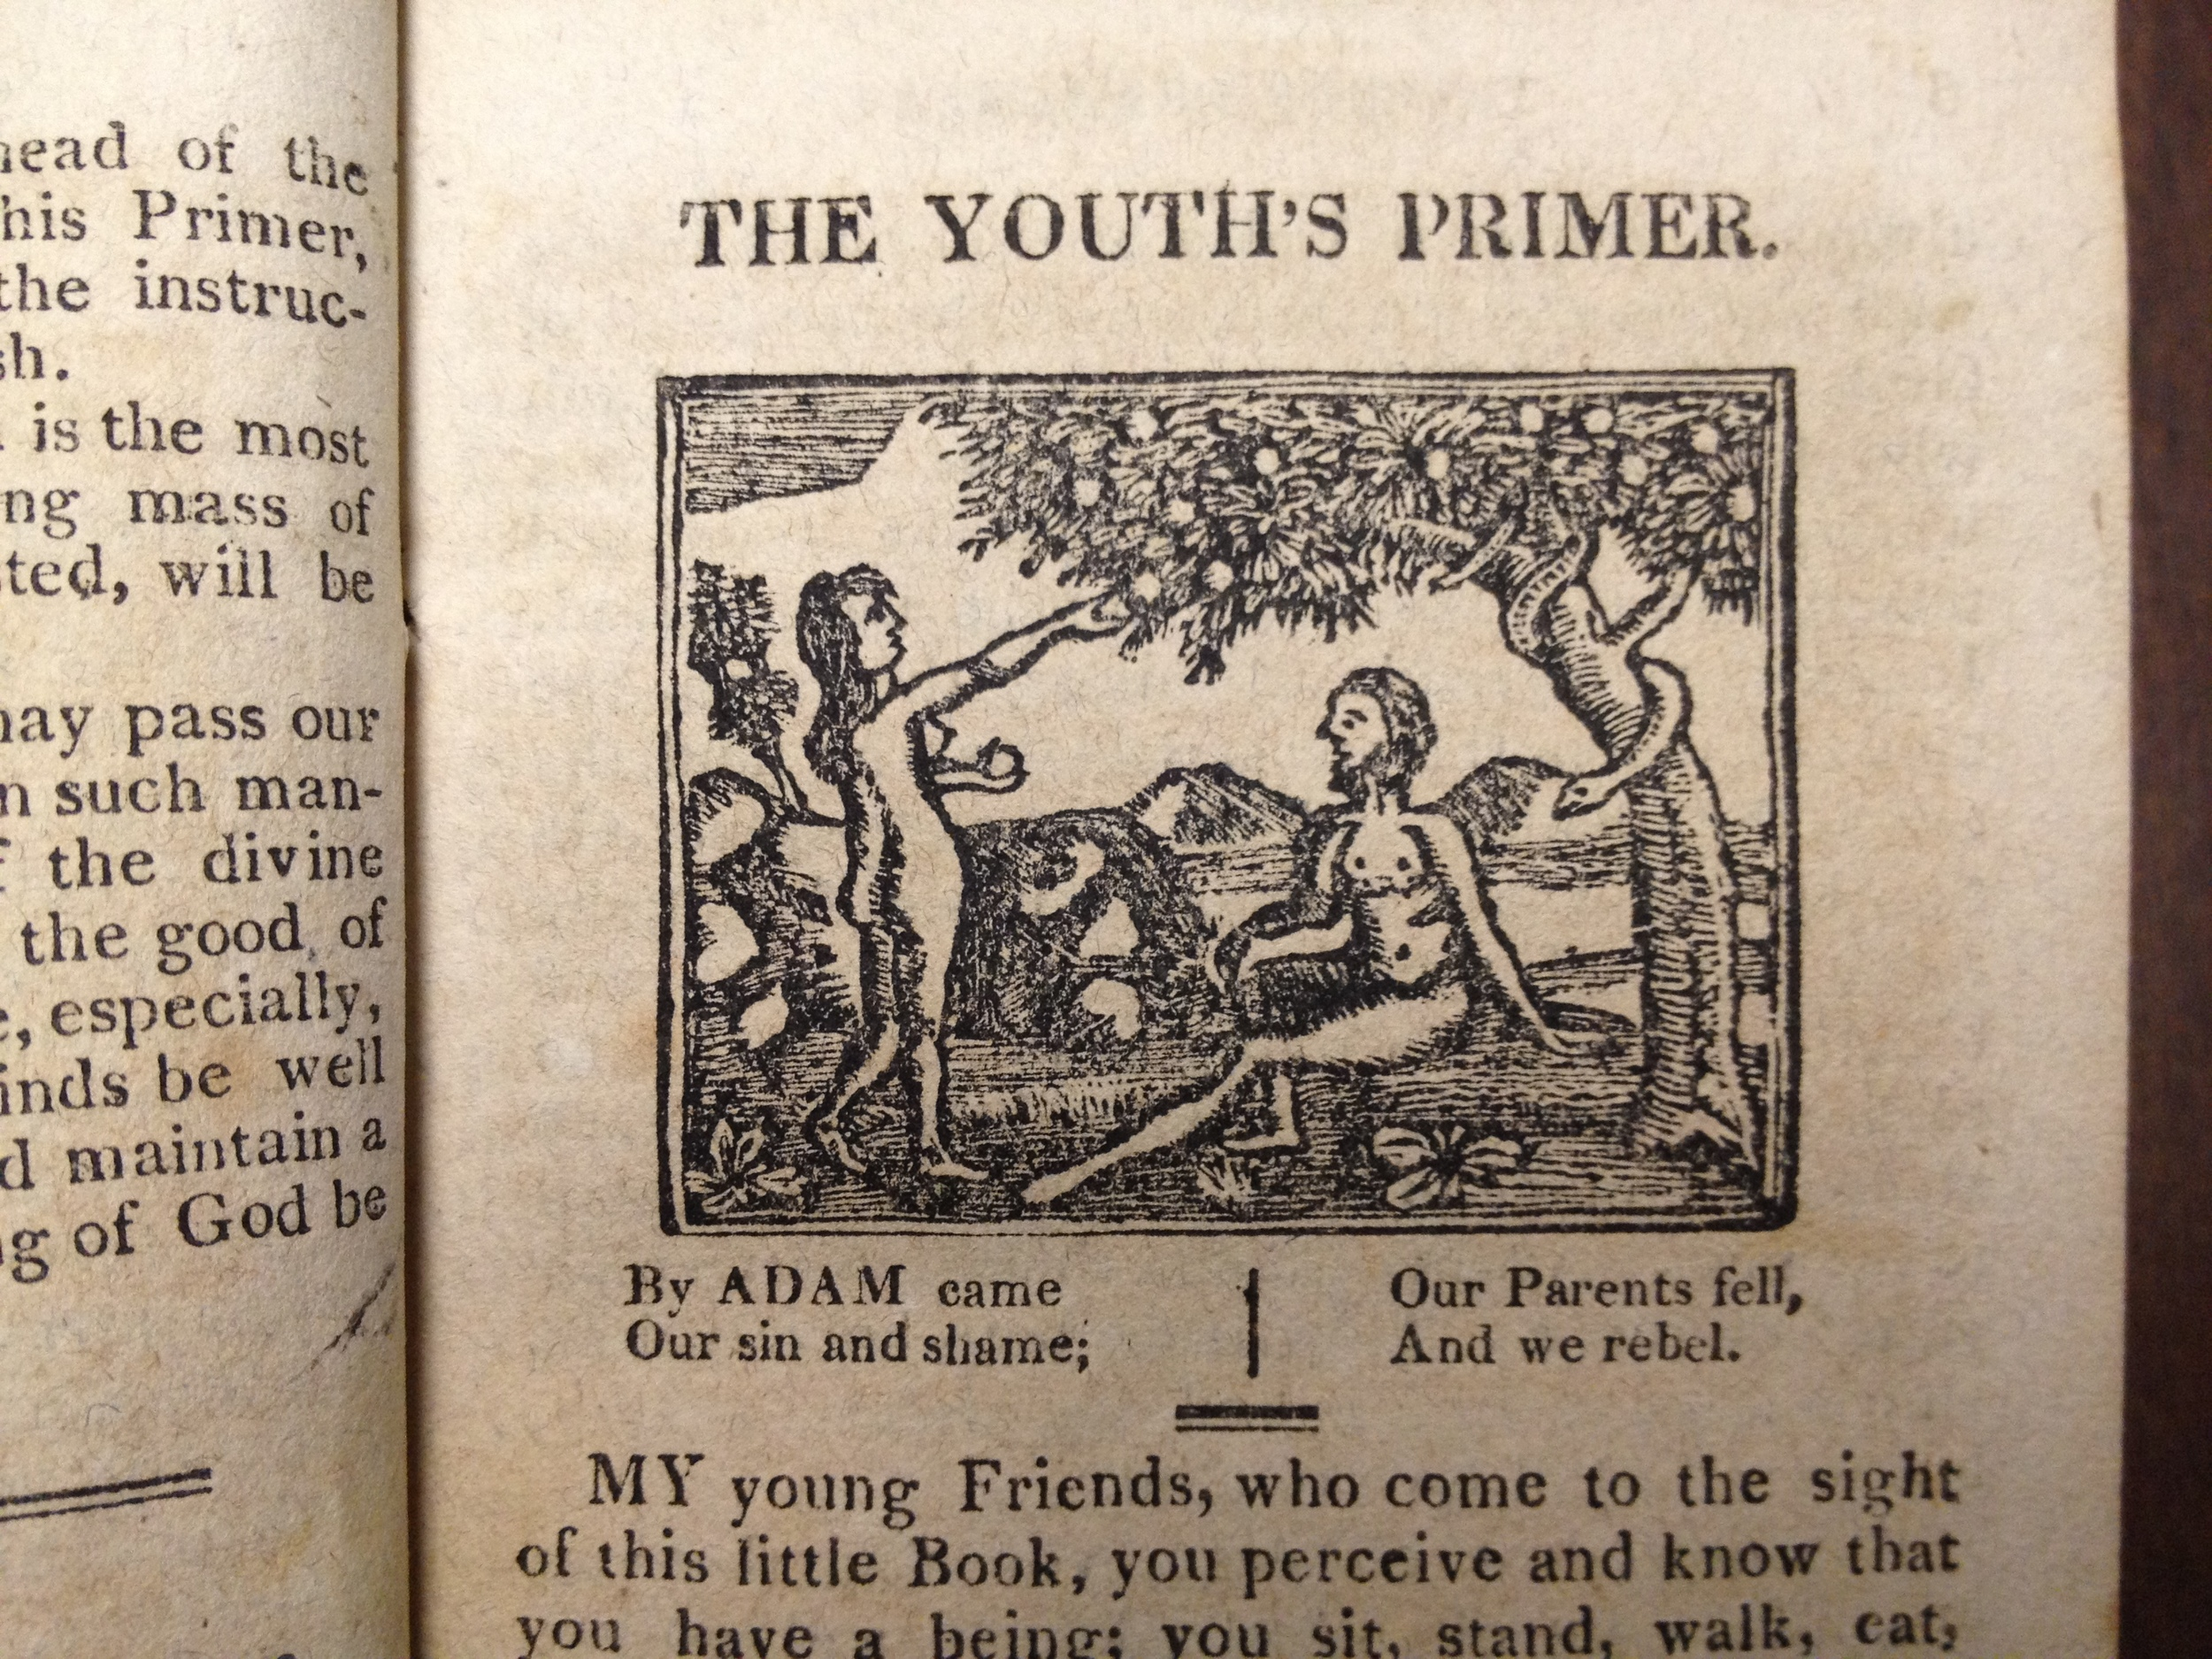 The Youth's Primer, published in 1817.